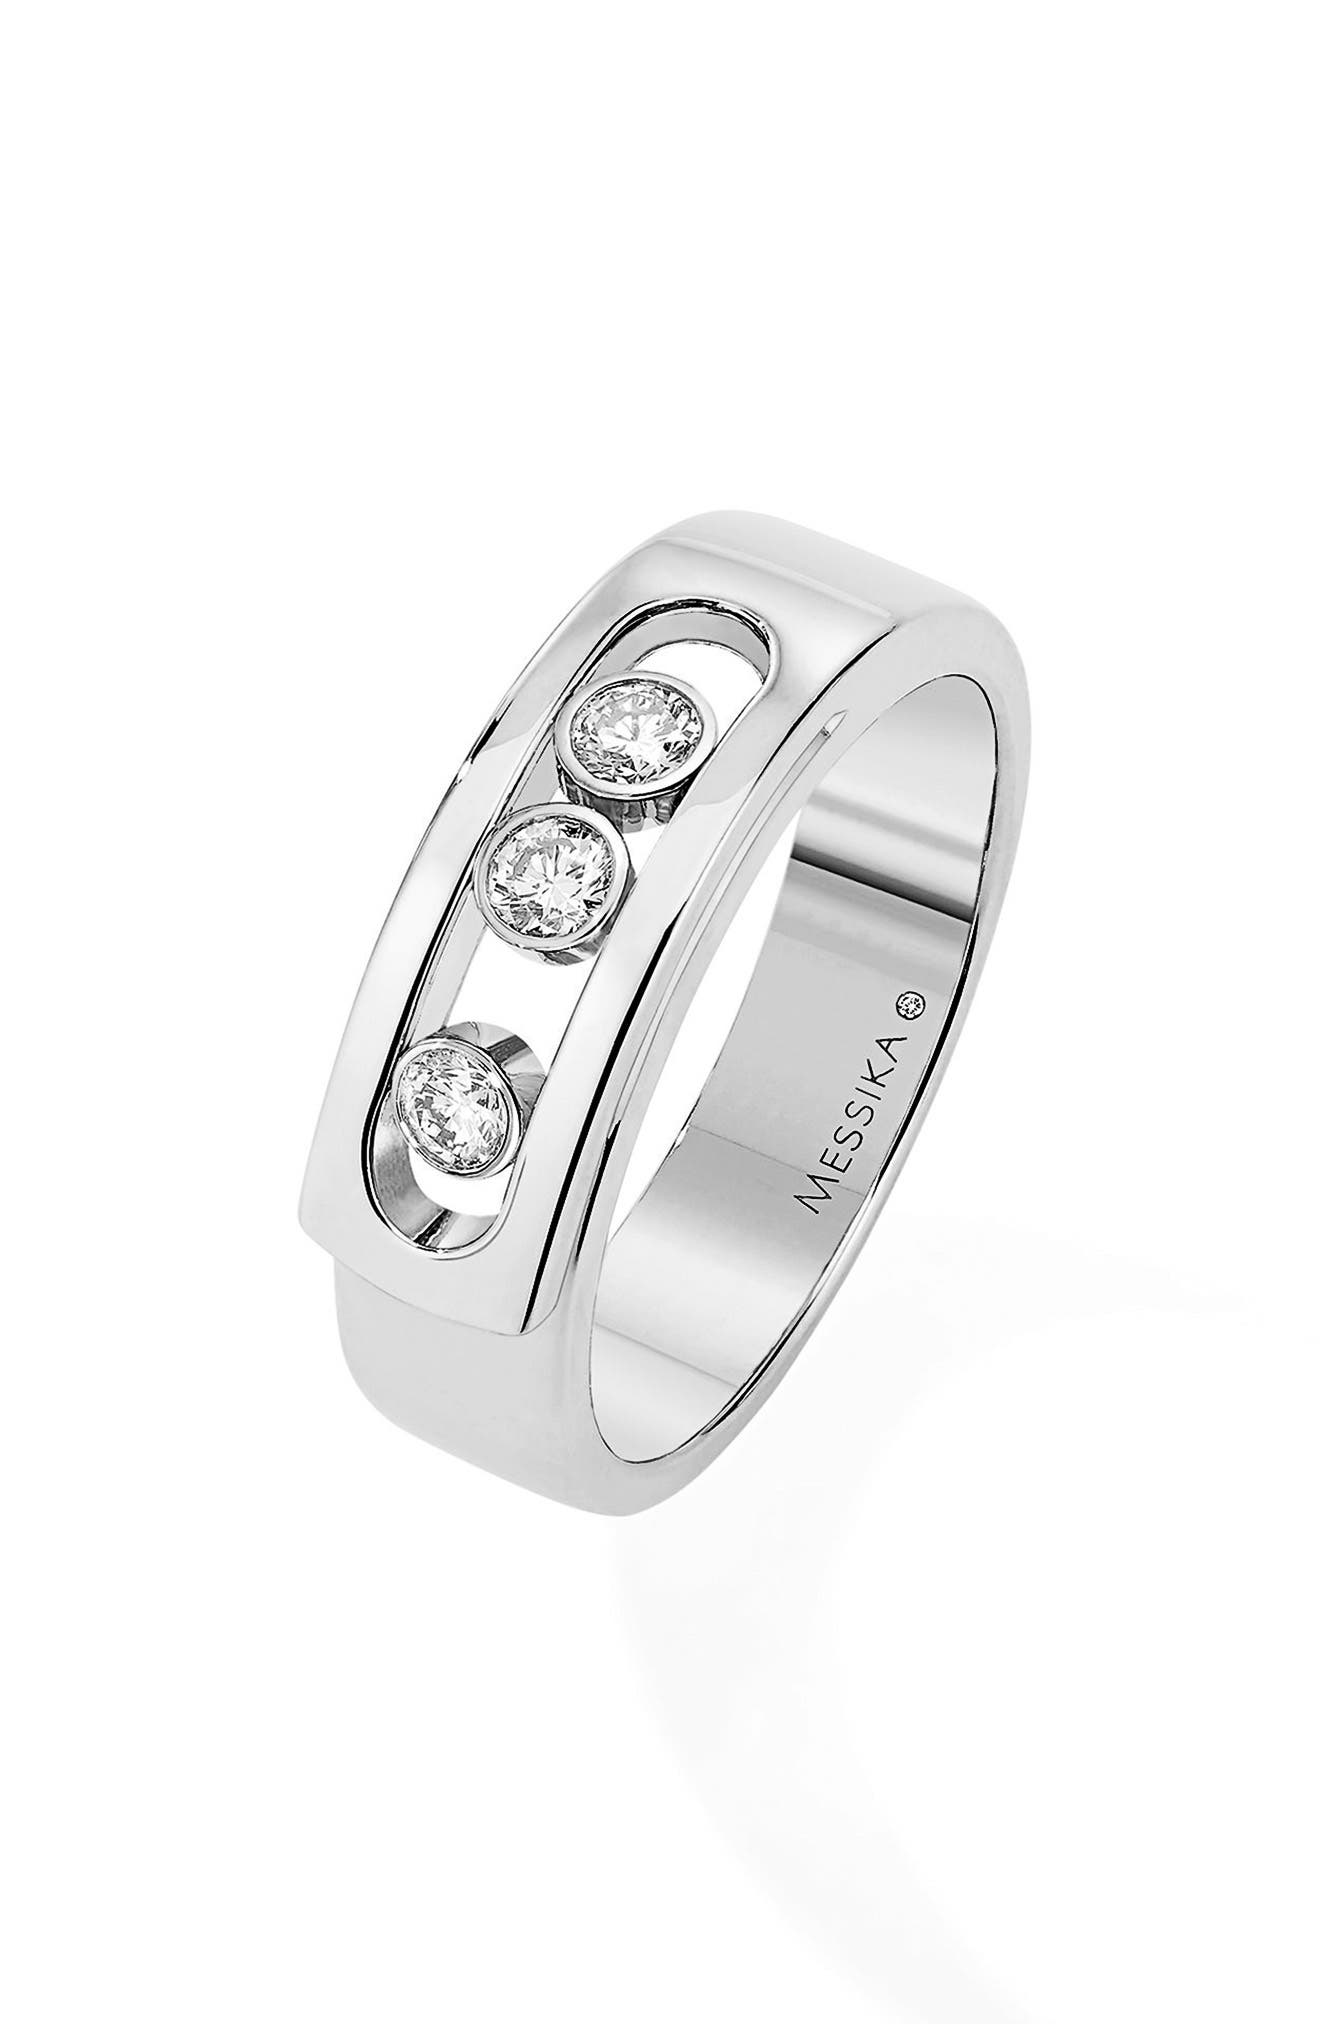 Move Noa Diamond Band Ring,                         Main,                         color, WHITE GOLD